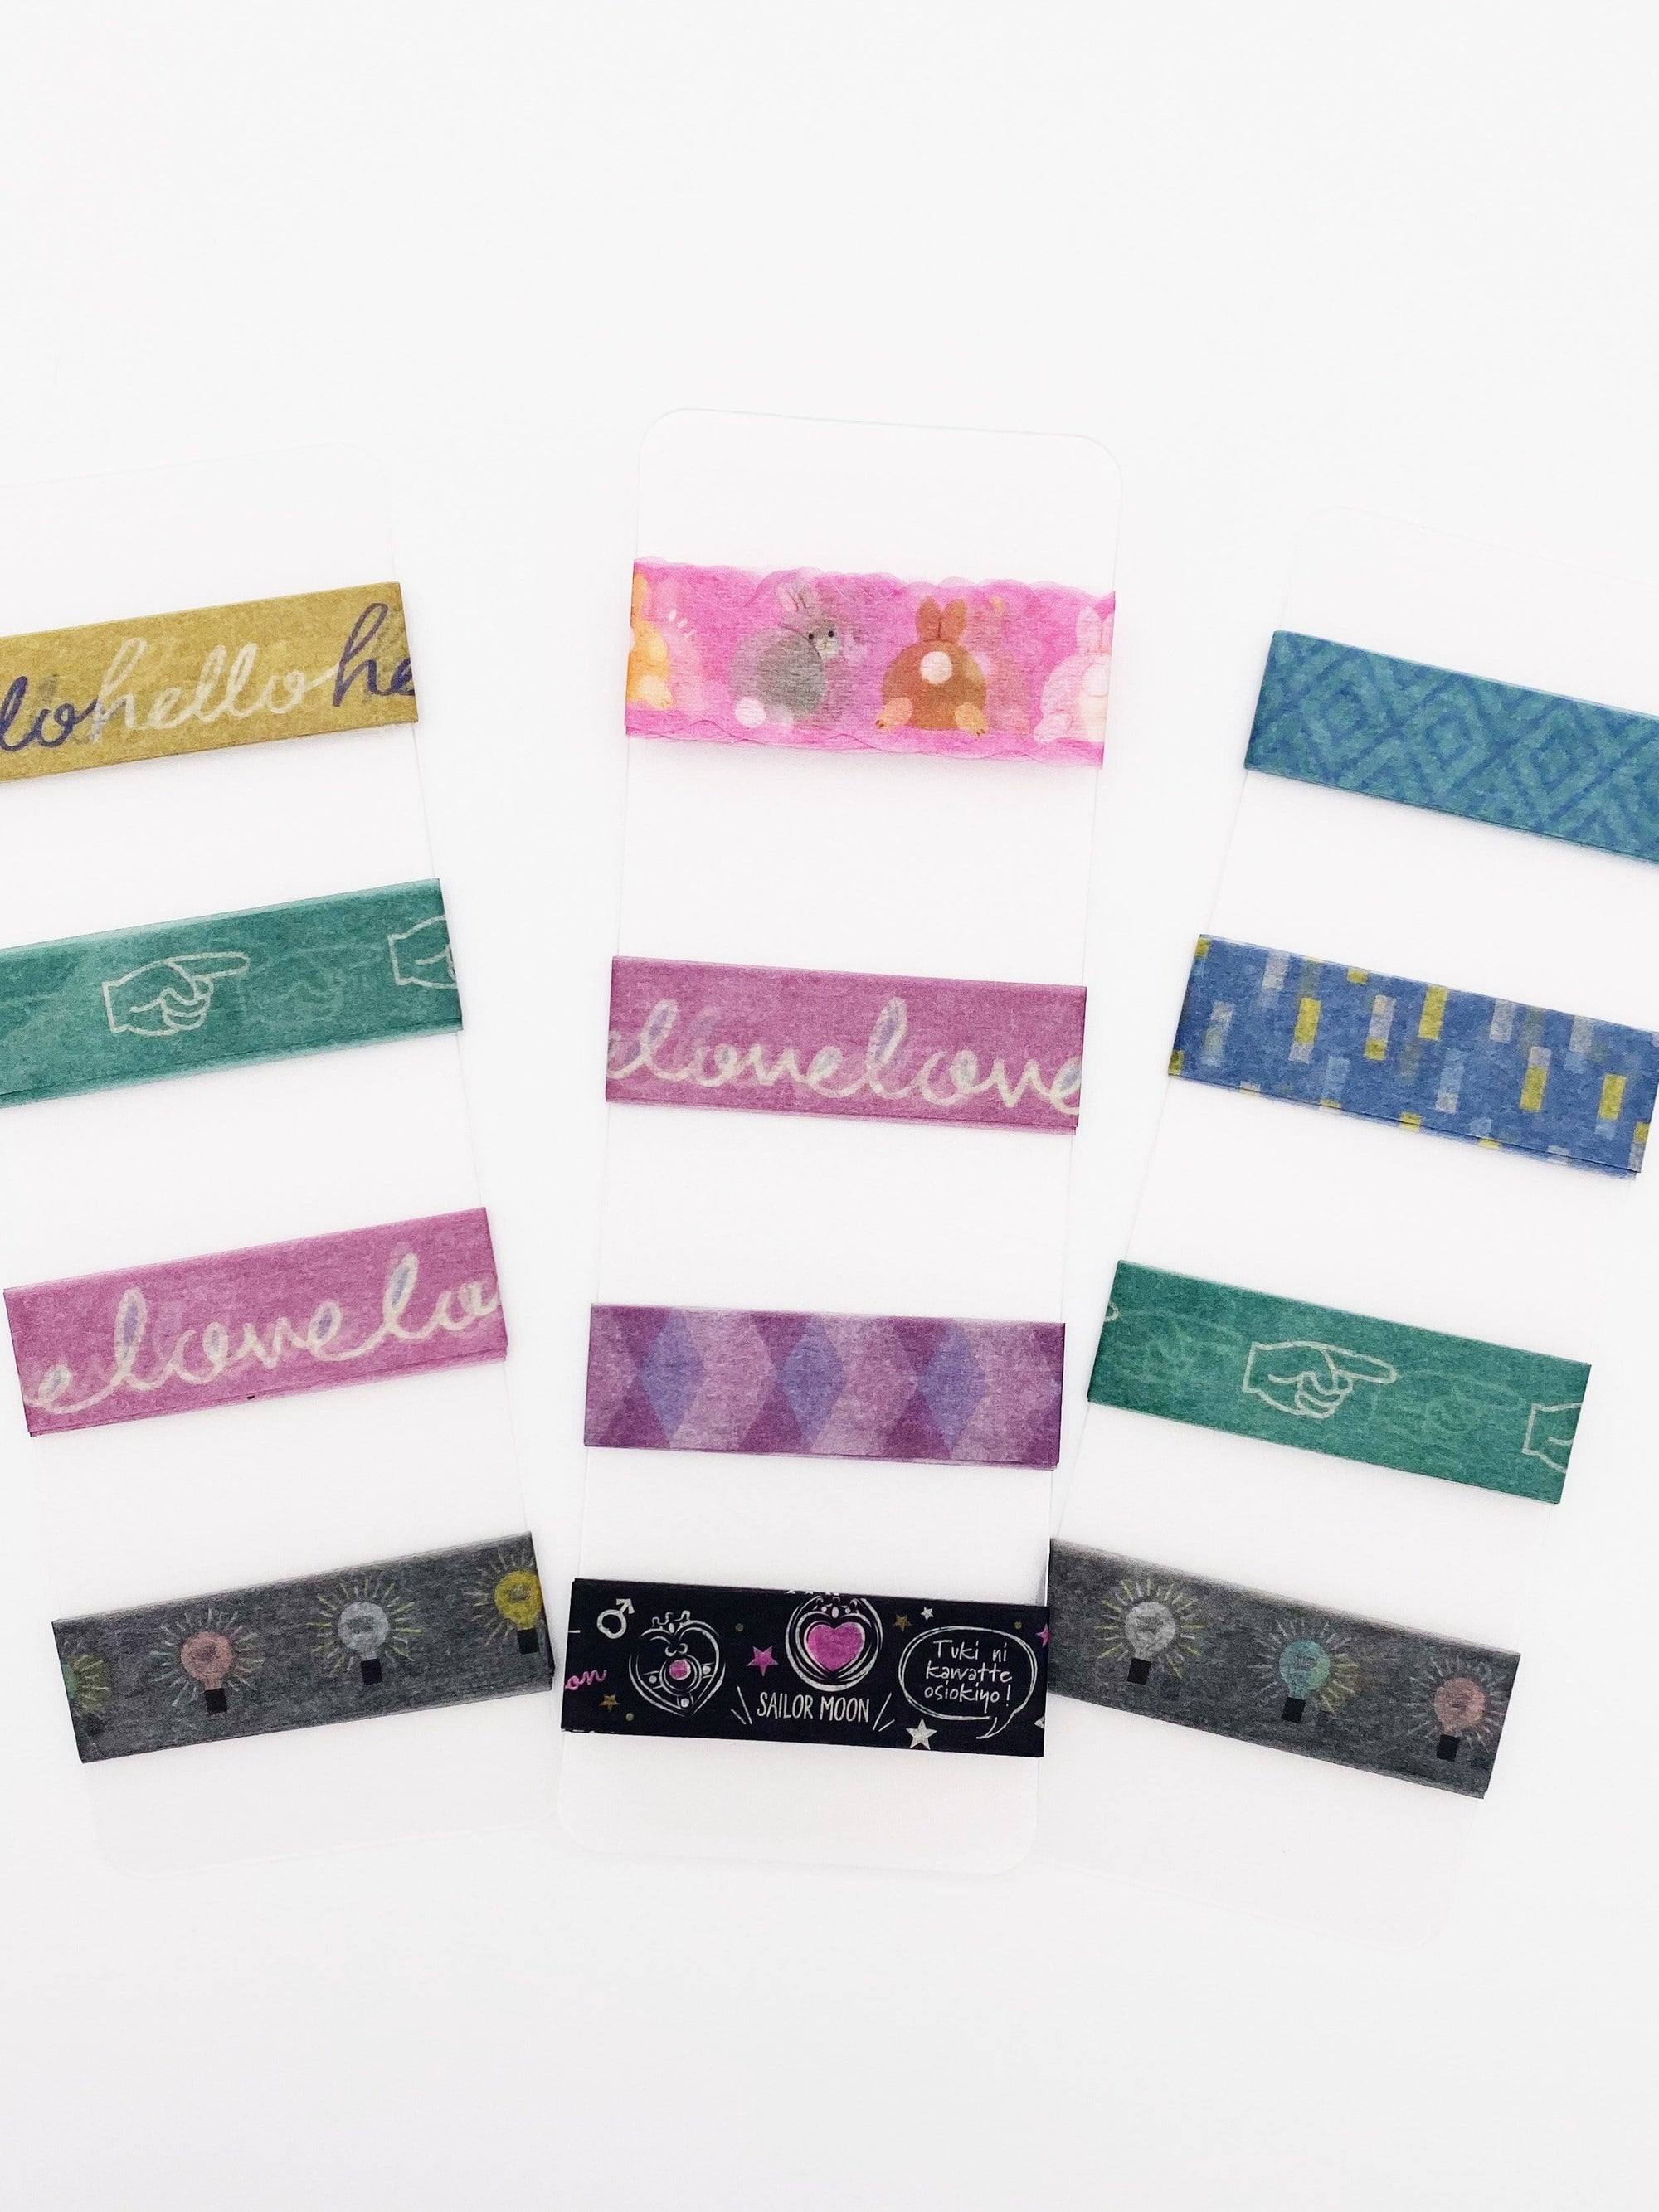 Washi Tape Sample Cards